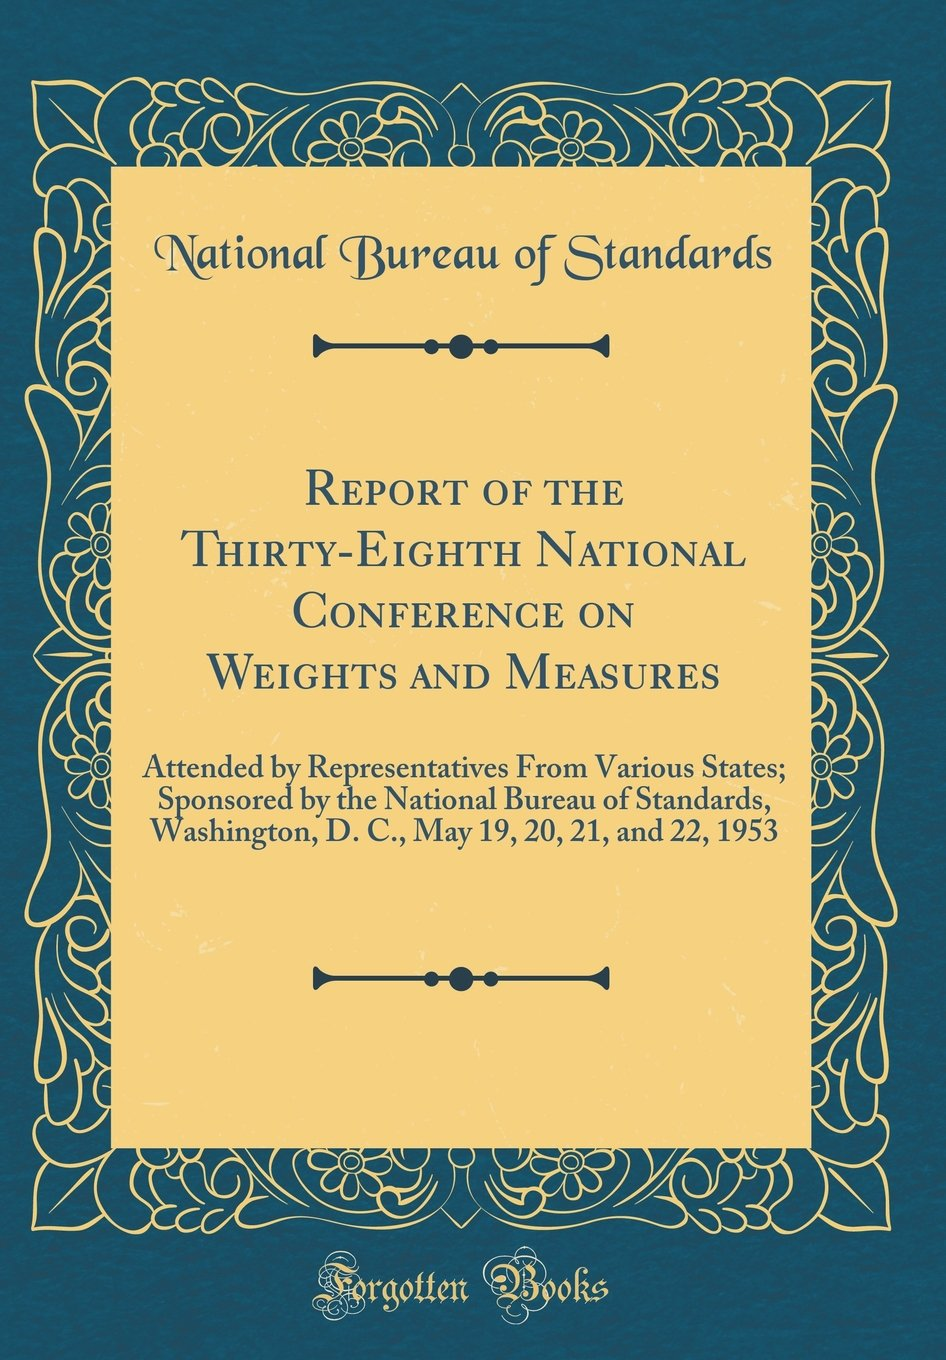 Read Online Report of the Thirty-Eighth National Conference on Weights and Measures: Attended by Representatives from Various States; Sponsored by the National ... 19, 20, 21, and 22, 1953 (Classic Reprint) ebook